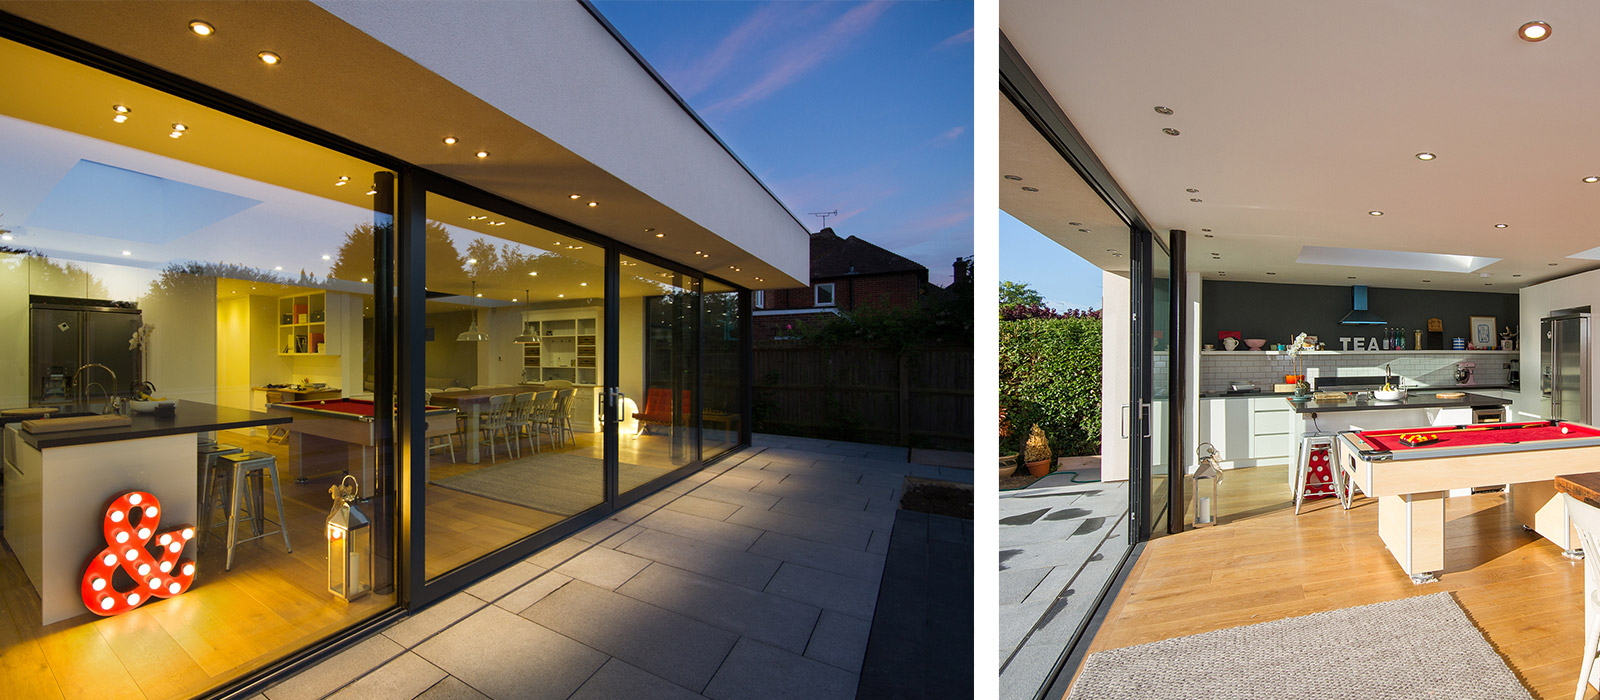 gyd architecture | internal and external patio areas